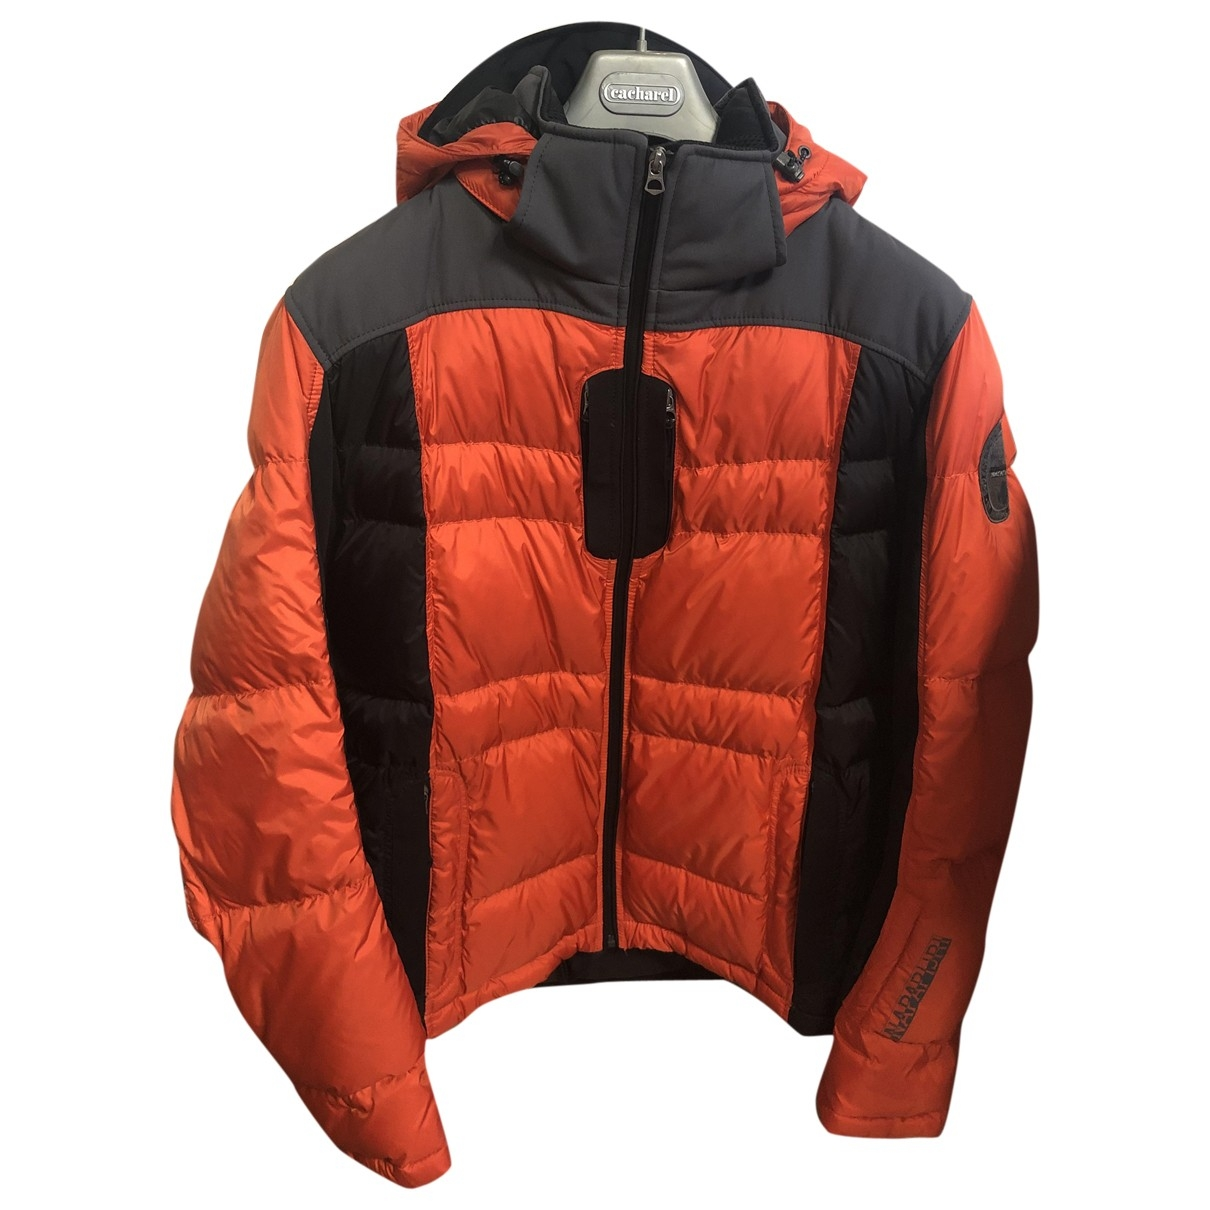 Napapijri \N Orange jacket  for Men XXL International